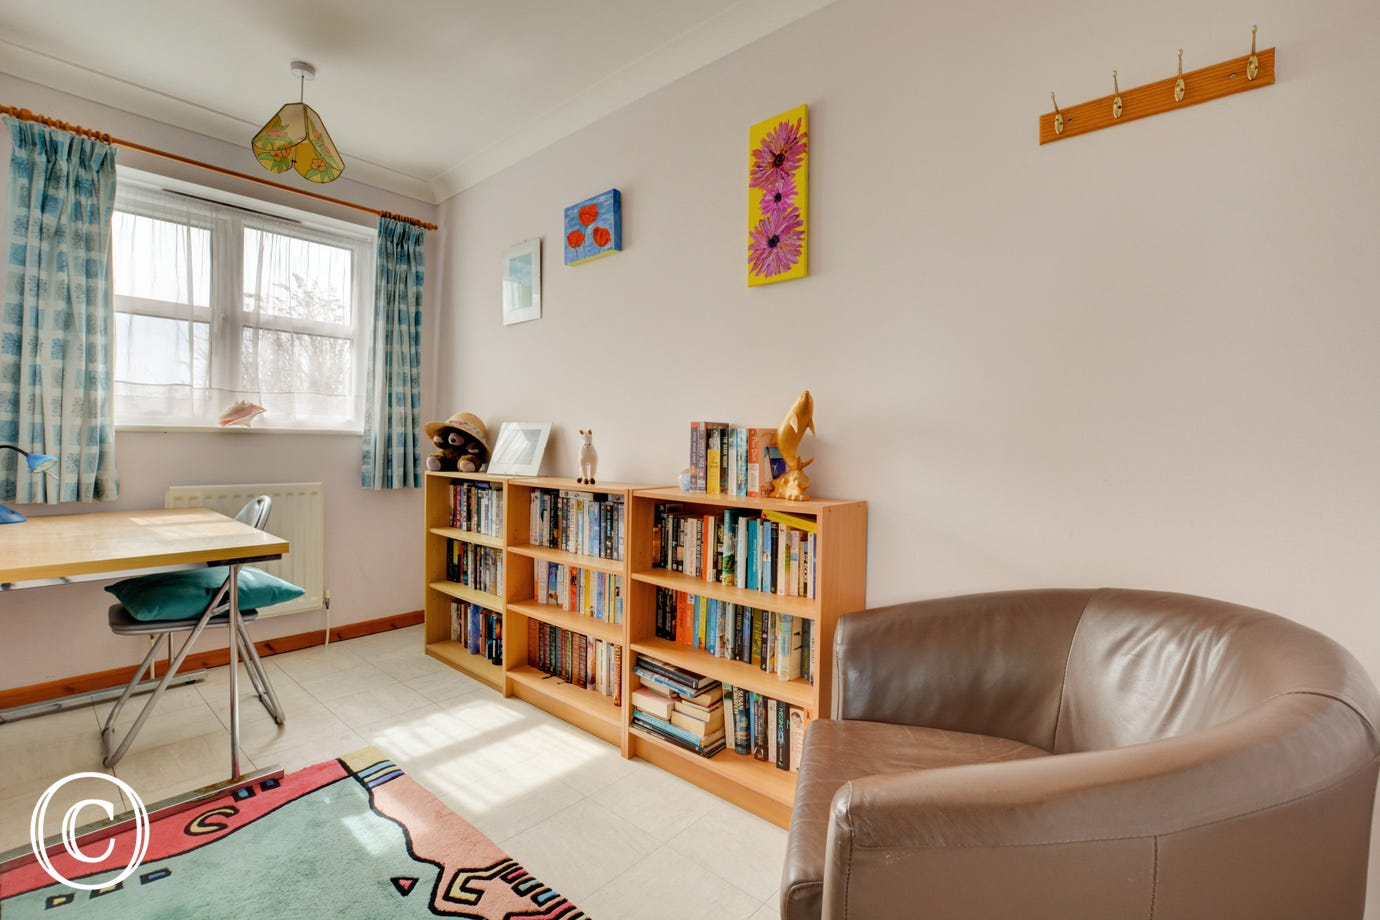 A small study/library with a desk sofa, and selection of books.